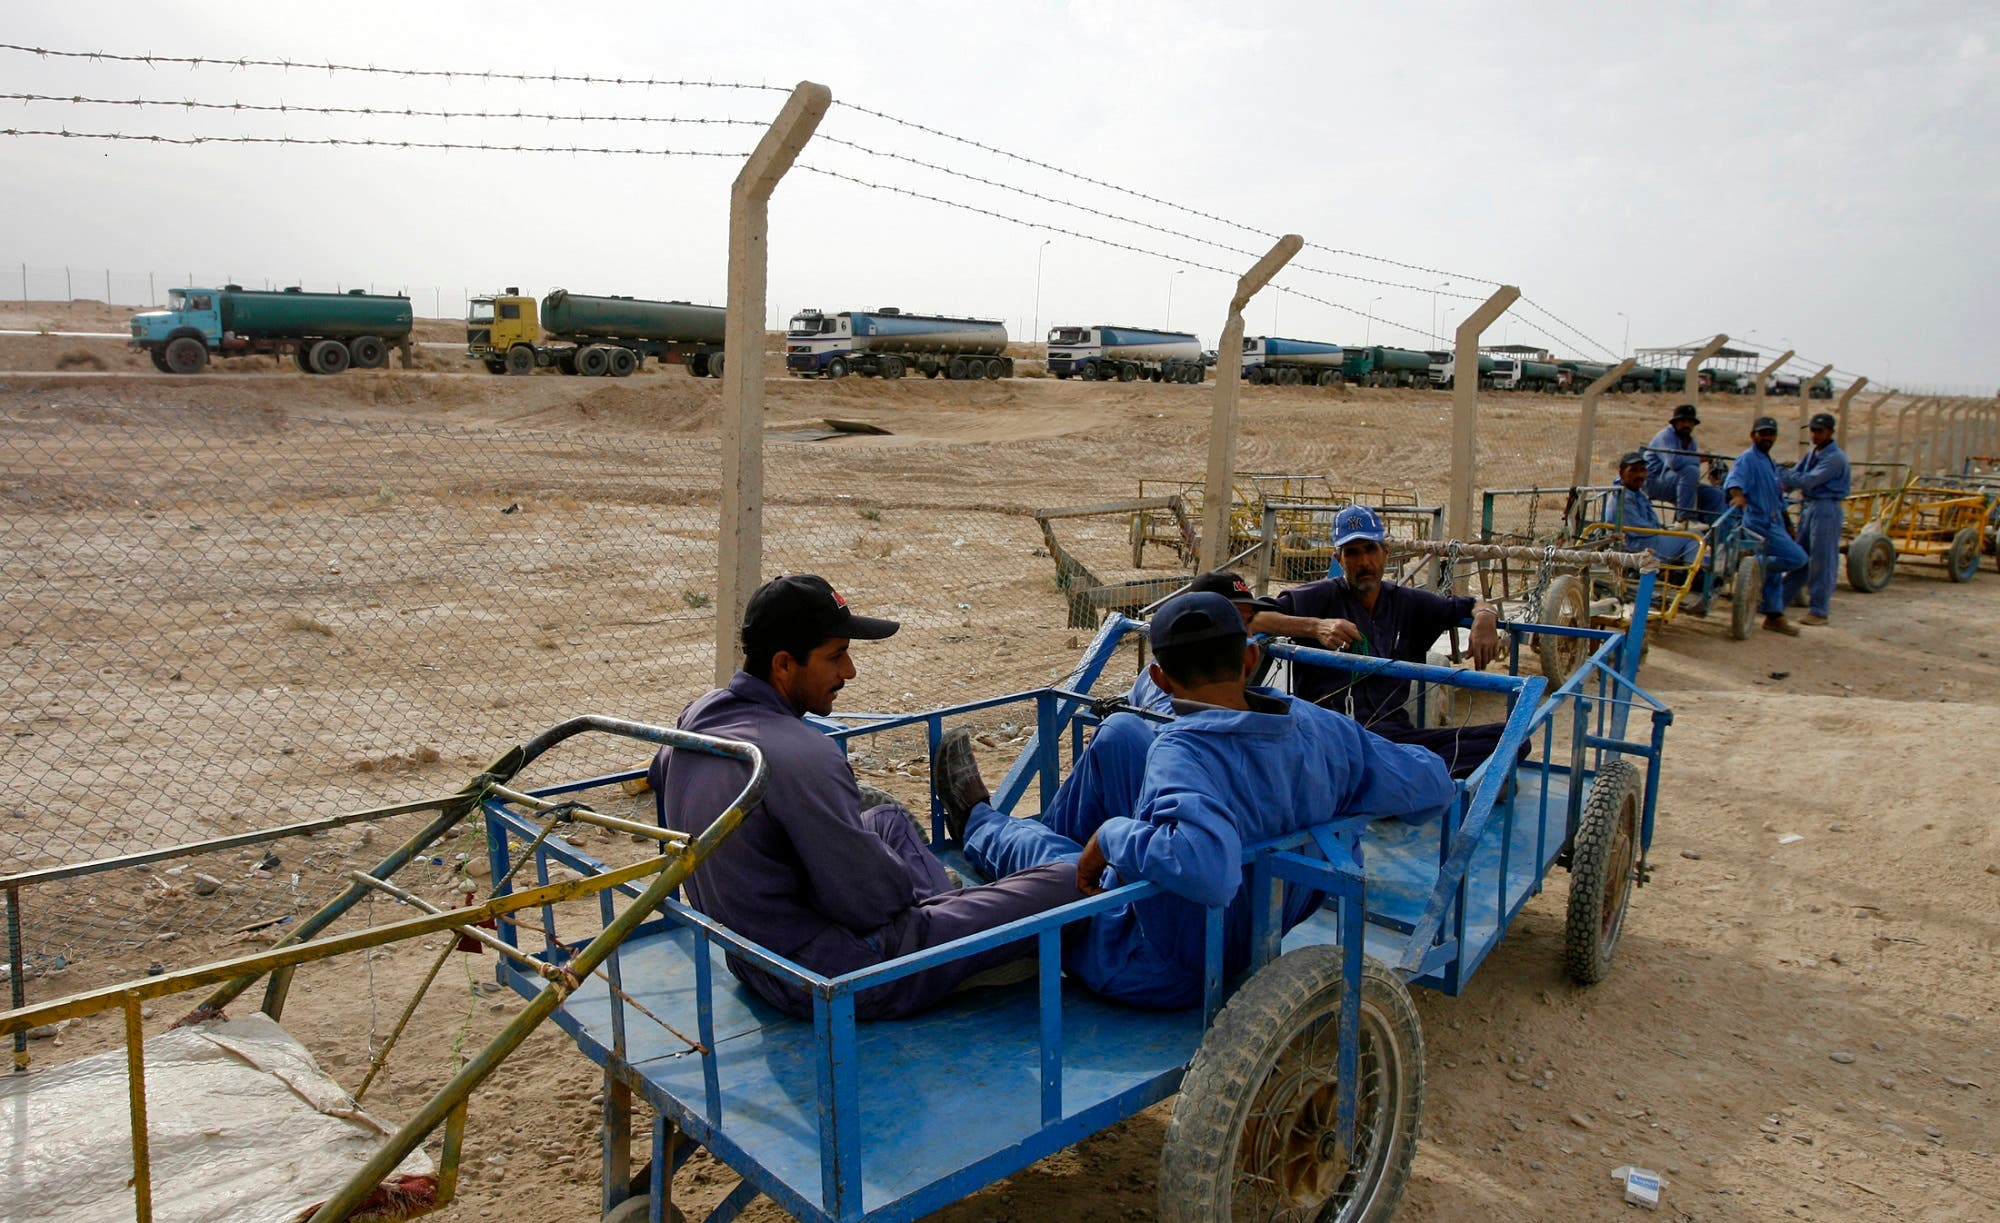 Iraqi porters sit on their carts as they wait for customers overlooking Iran bound oil tankers at the new Zurbatia checkpoint, 120 km southeast of Baghdad November 17, 2007. (Reuters)